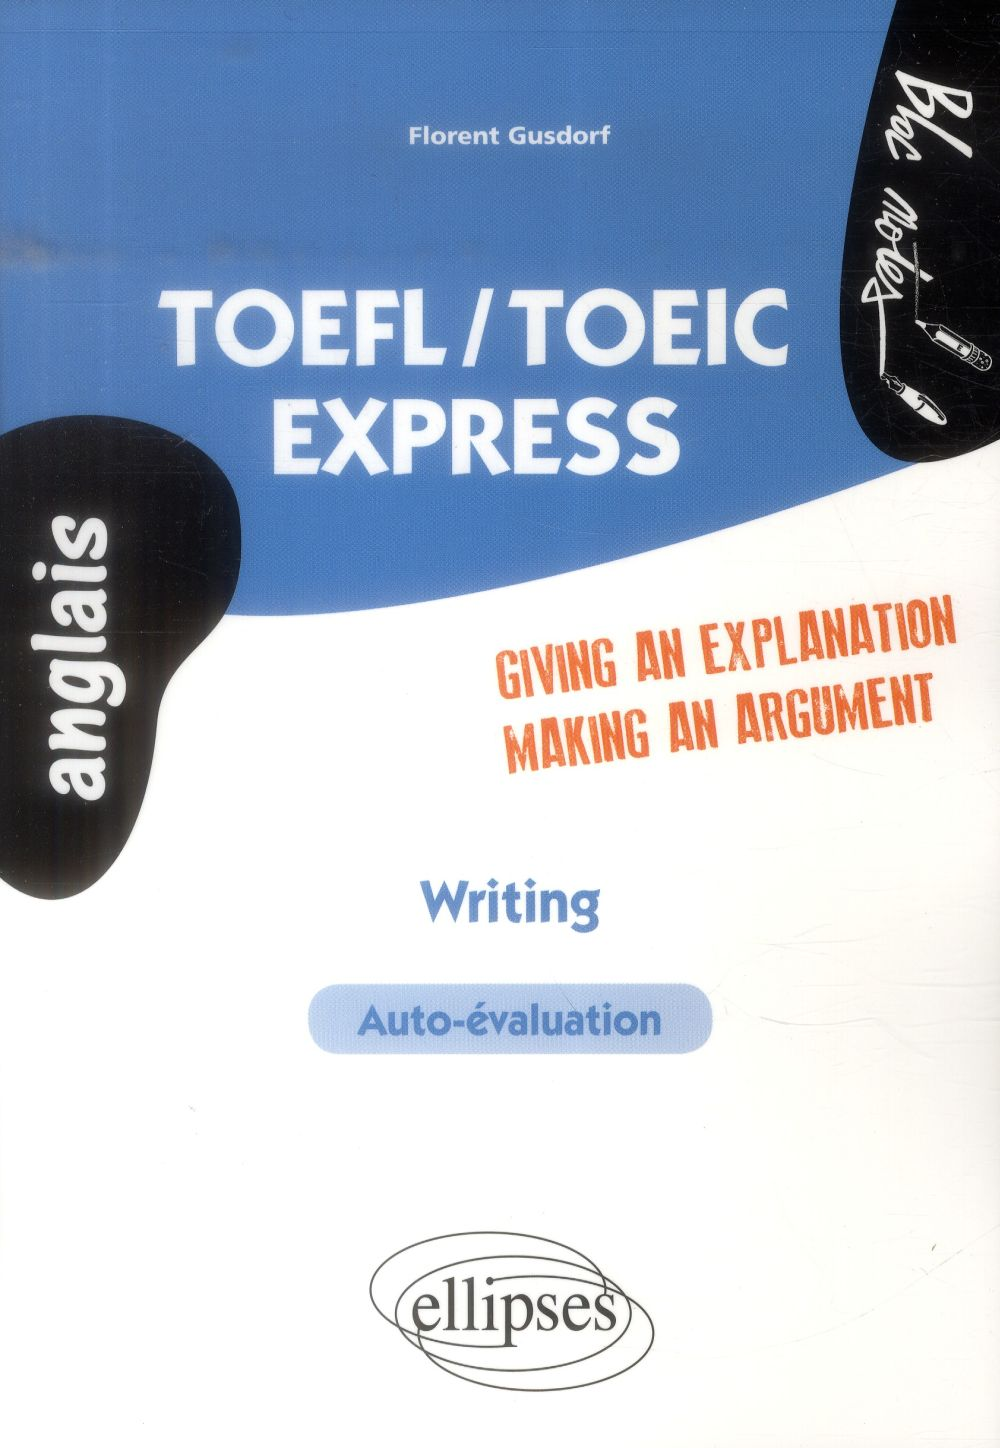 Toefl/Toeic Express Writing Giving An Explanation Making A Statement Auto-Evaluation